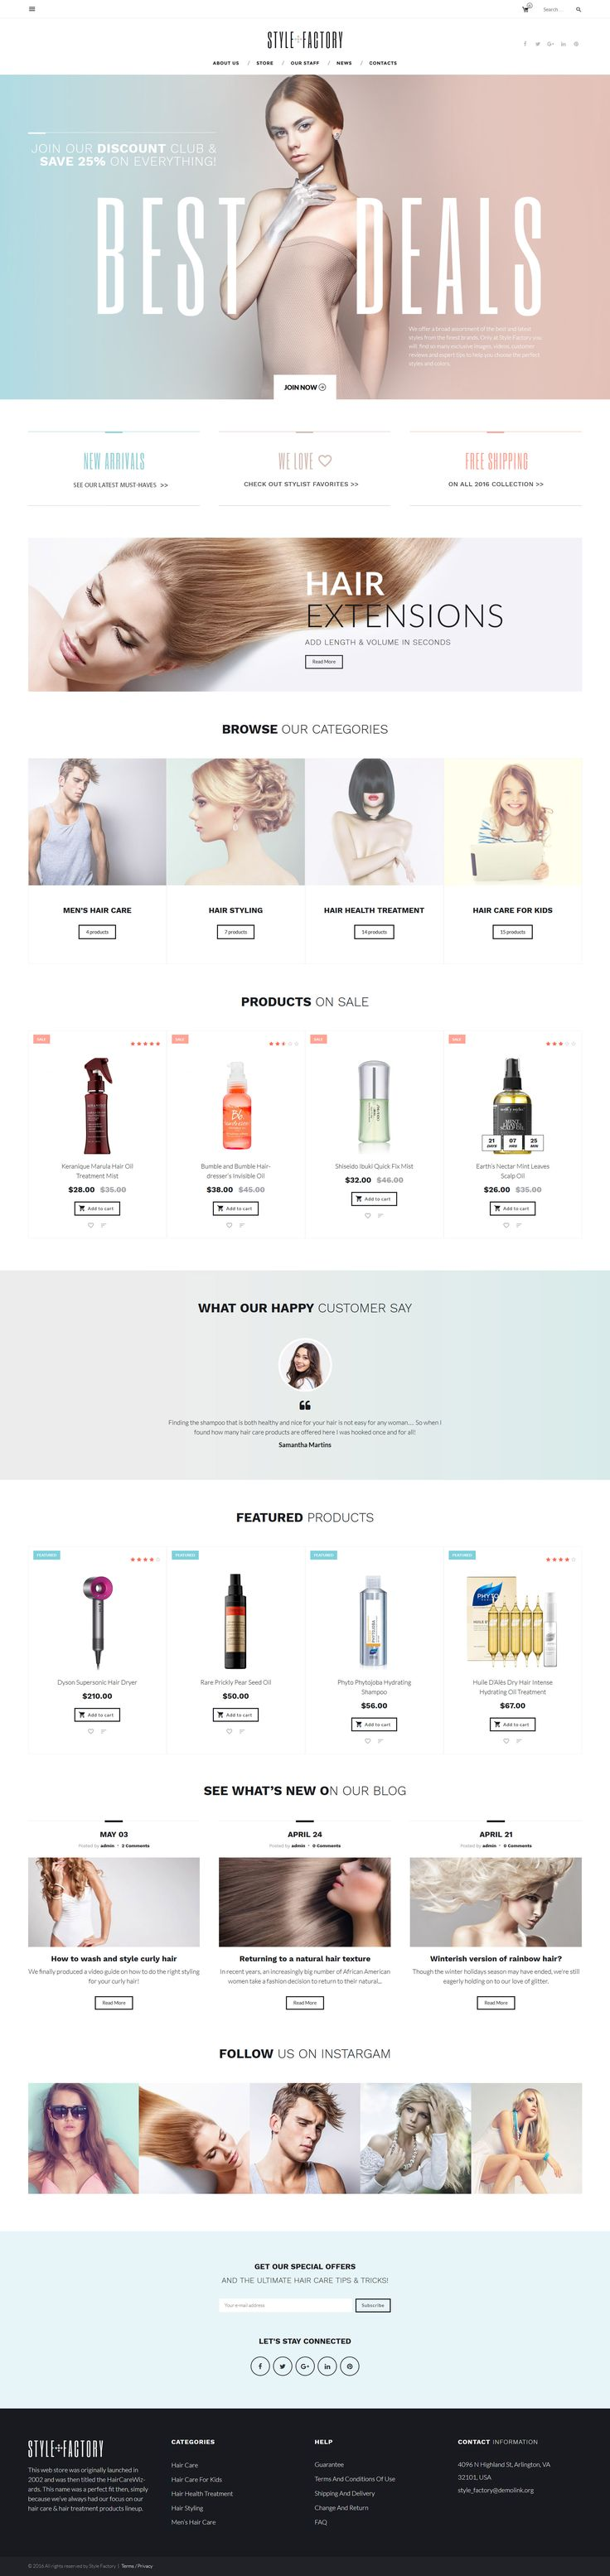 Hair Salon WooCommerce Theme - https://www.templatemonster.com/woocommerce-themes/61305.html